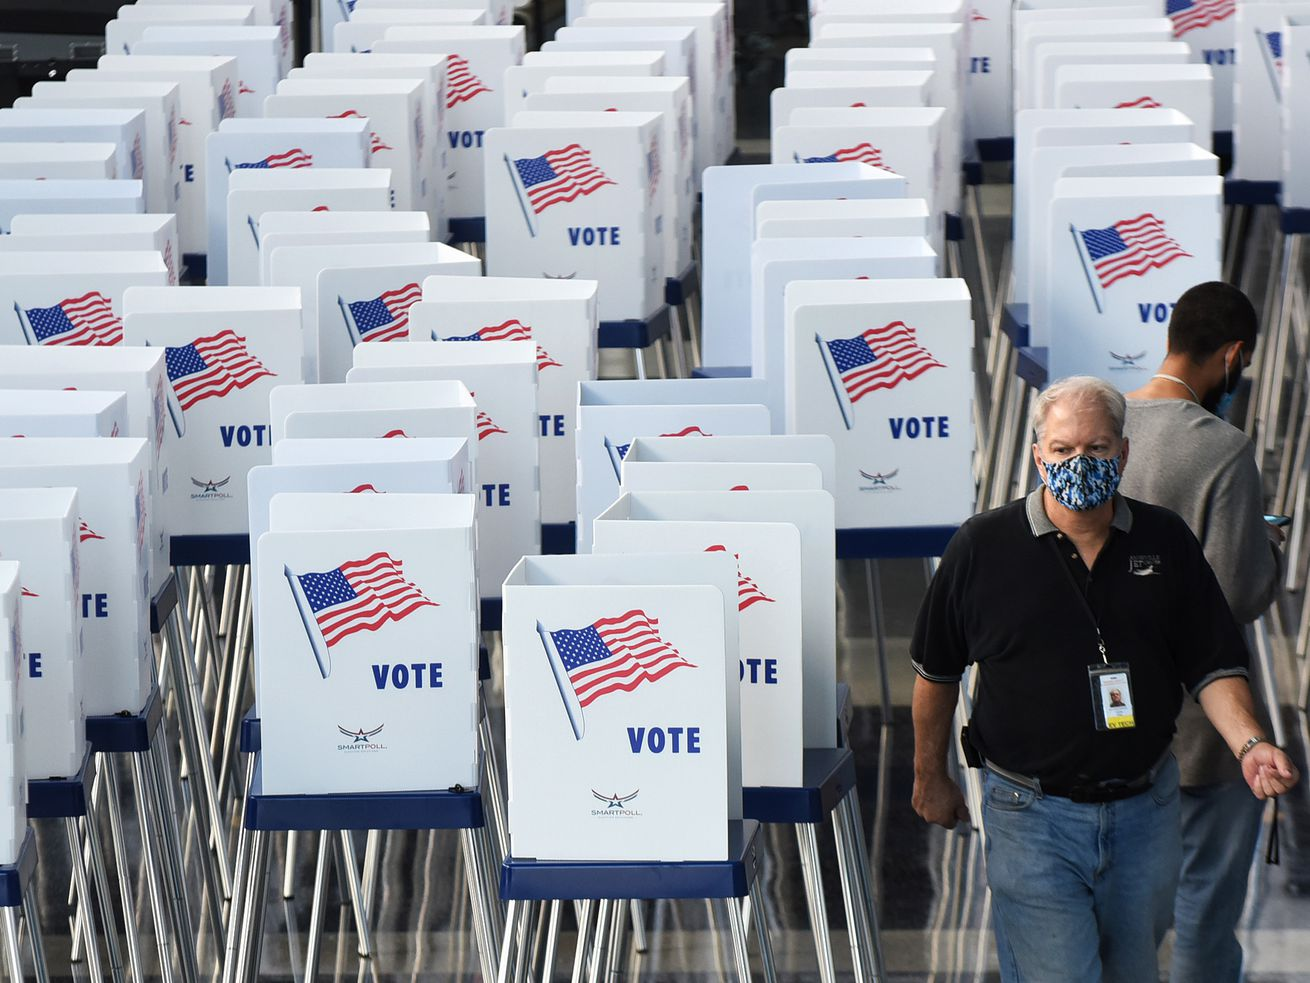 An election worker in a mask stands beside voting booths at an early voting location in Florida.